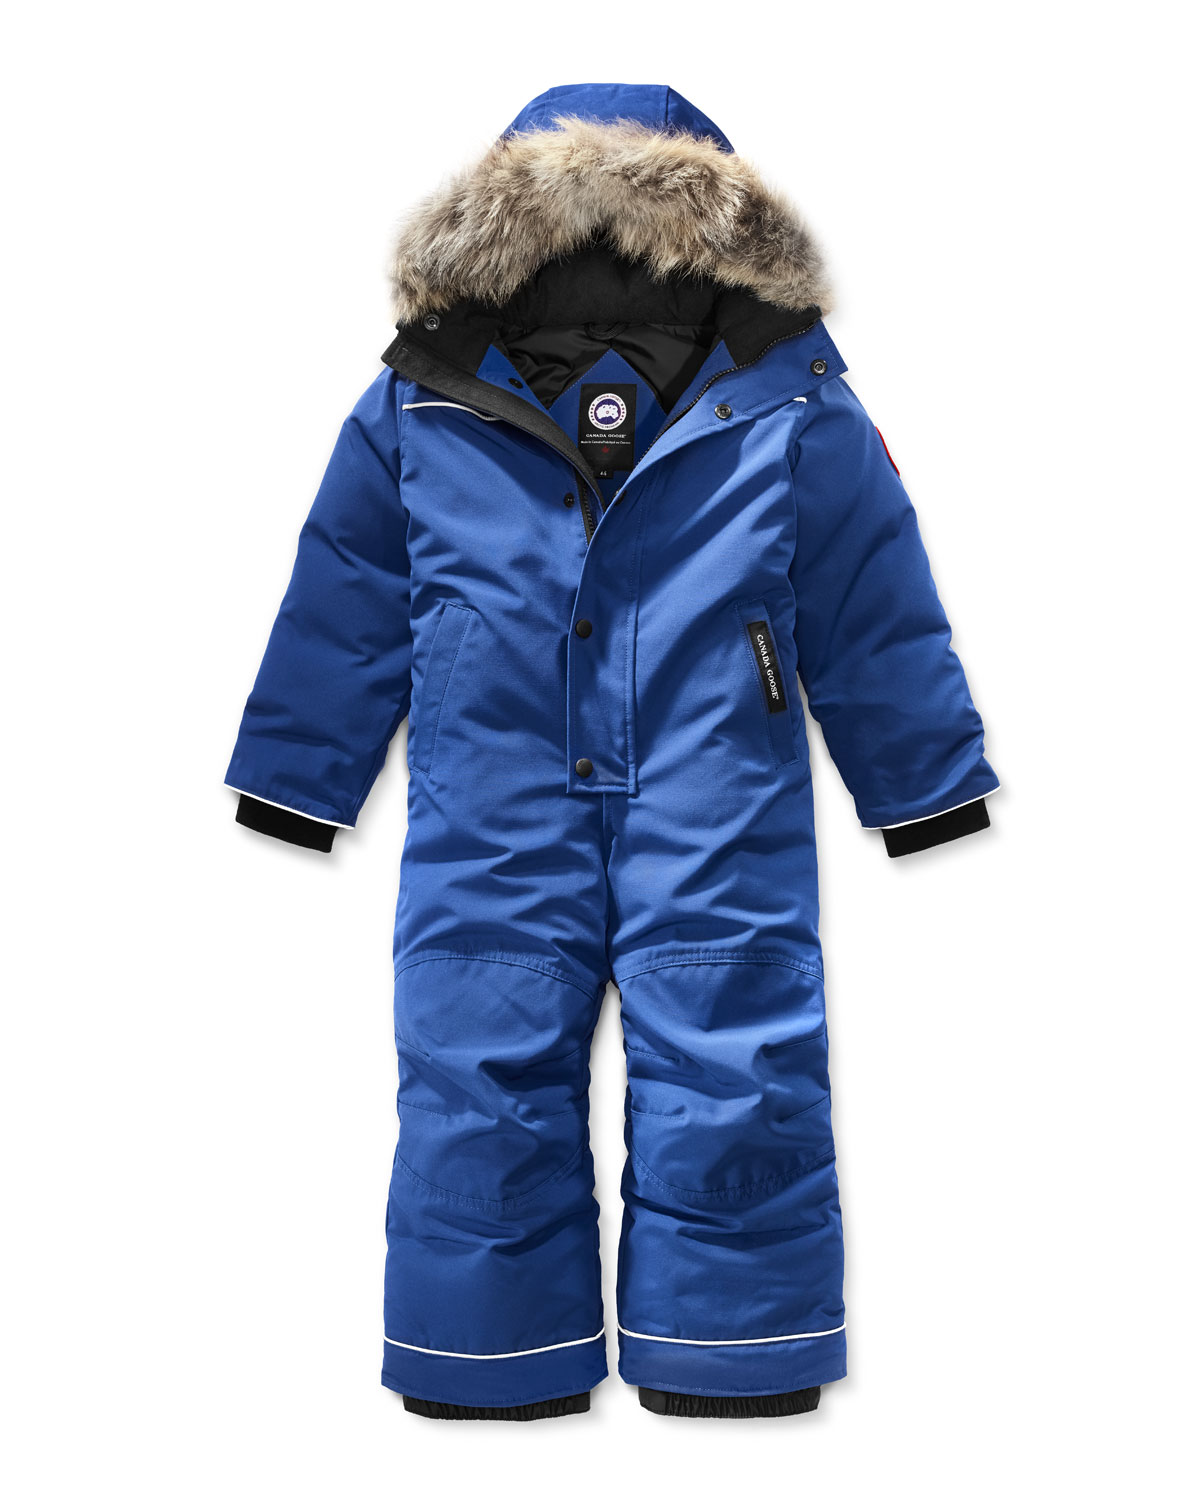 4527ea432 Canada Goose Grizzly Hooded Snowsuit, Size 2-7   Neiman Marcus